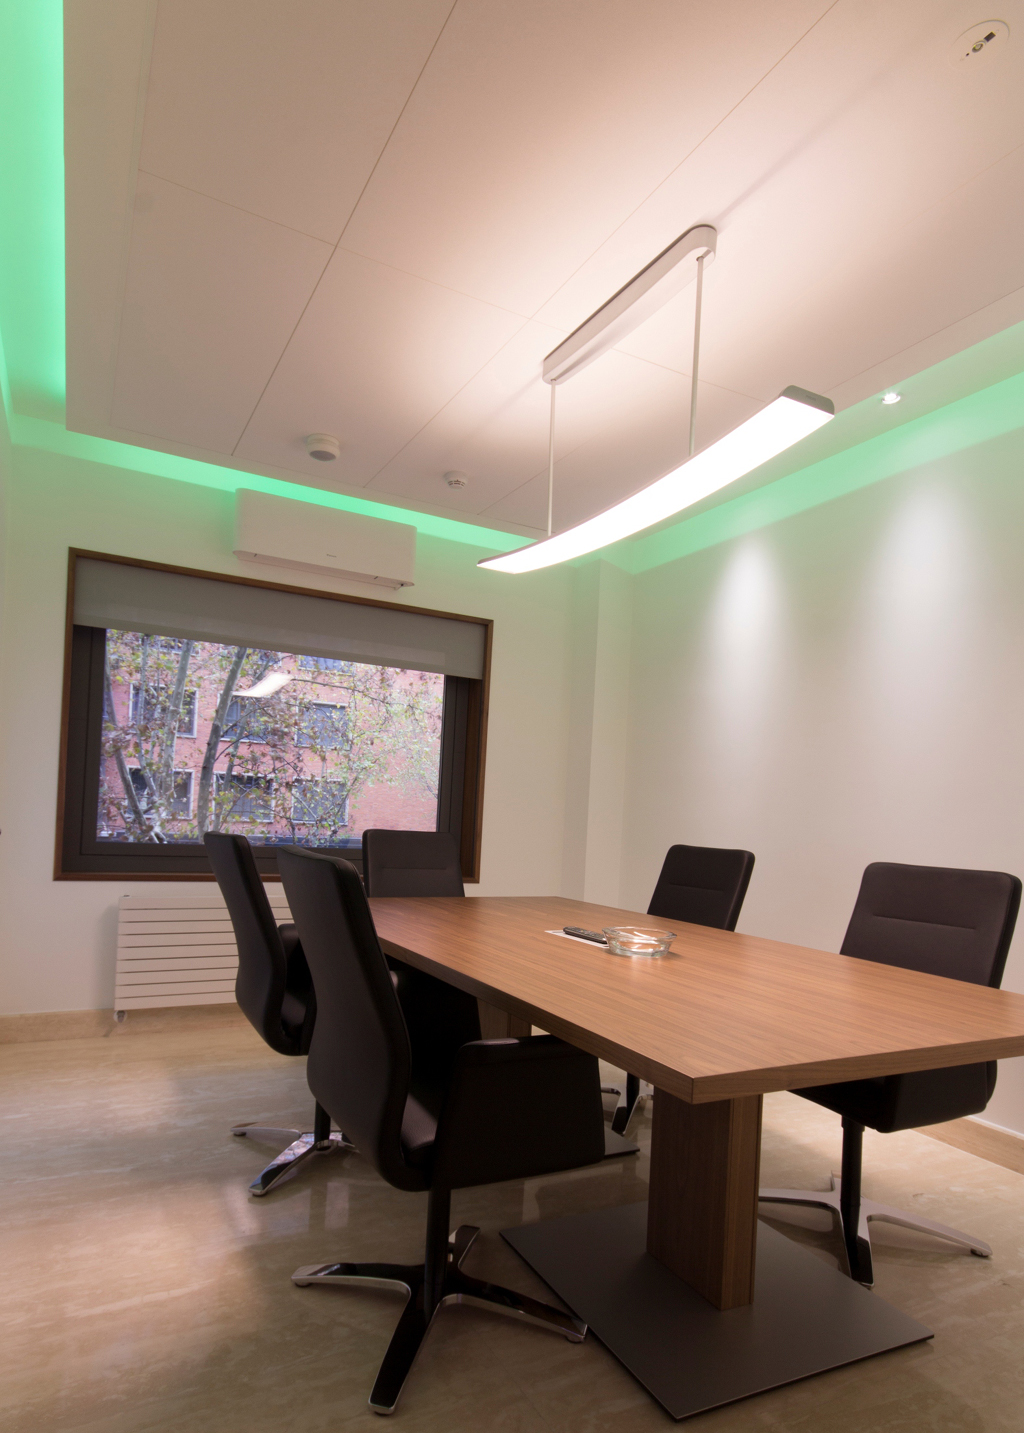 Hm value dise a sus oficinas con las luminarias led de philips for Iluminacion para oficinas